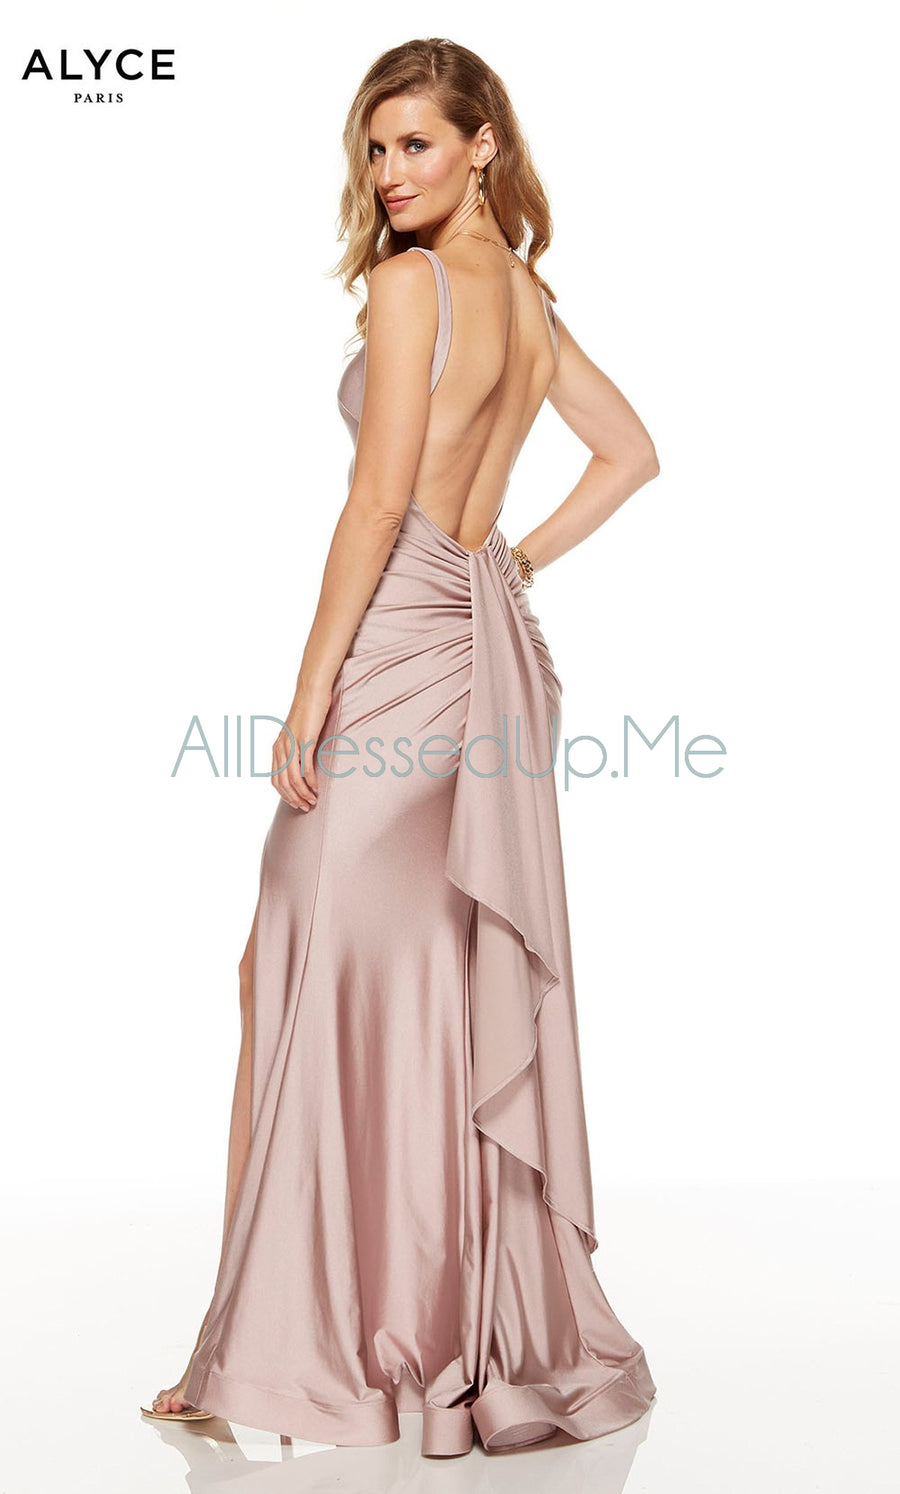 Alyce Paris - 60765 - All Dressed Up, Prom/Party Dress - - Dresses Two Piece Cut Out Sweetheart Halter Low Back High Neck Print Beaded Chiffon Jersey Fitted Sexy Satin Lace Jeweled Sparkle Shimmer Sleeveless Stunning Gorgeous Modest See Through Transparent Glitter Special Occasions Event Chattanooga Hixson Shops Boutiques Tennessee TN Georgia GA MSRP Lowest Prices Sale Discount